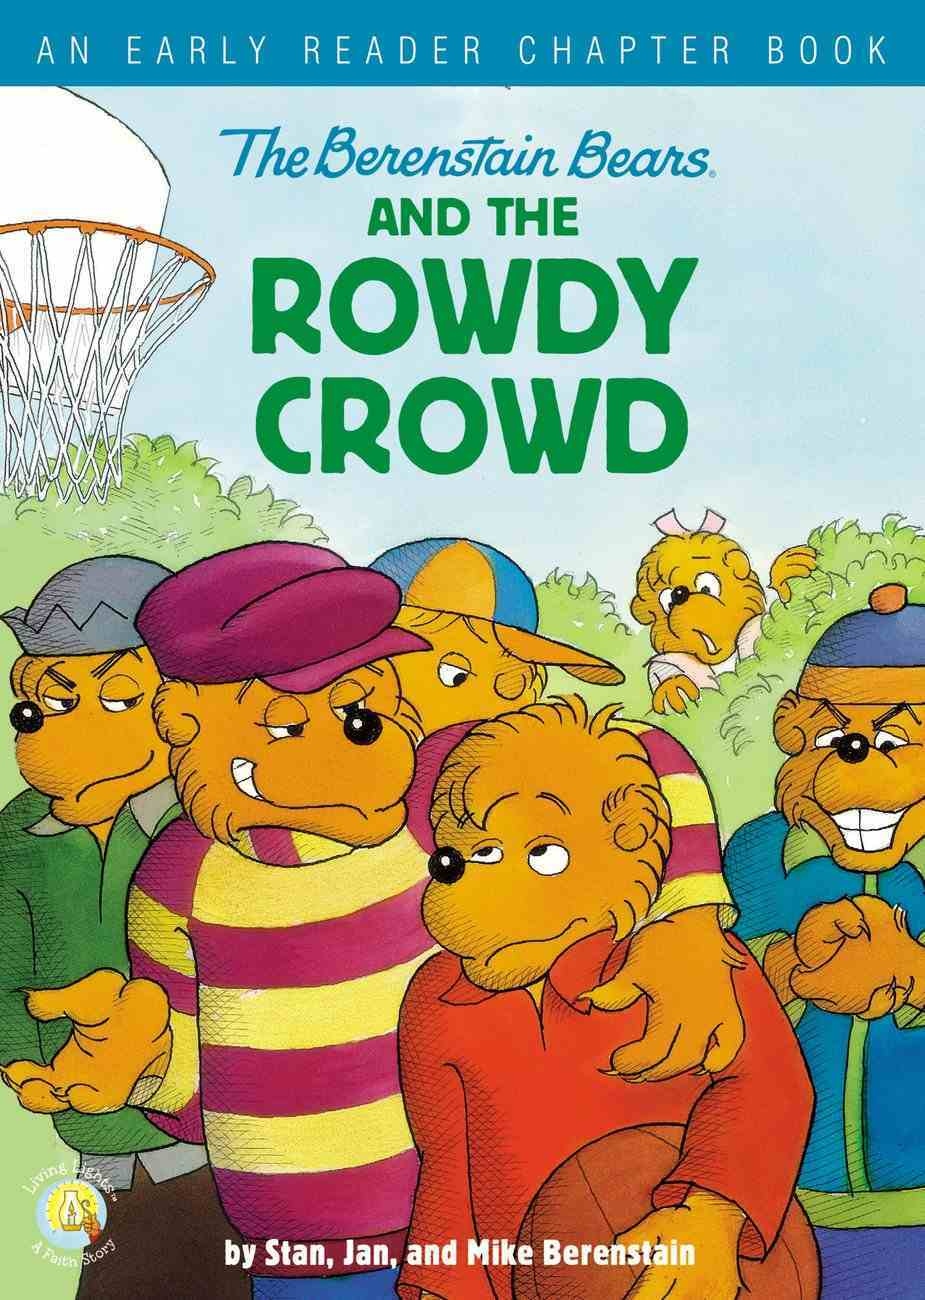 Berenstain Bears and the Rowdy Crowd, The: An Early Reader Chapter Book (The Berenstain Bears Series) Hardback